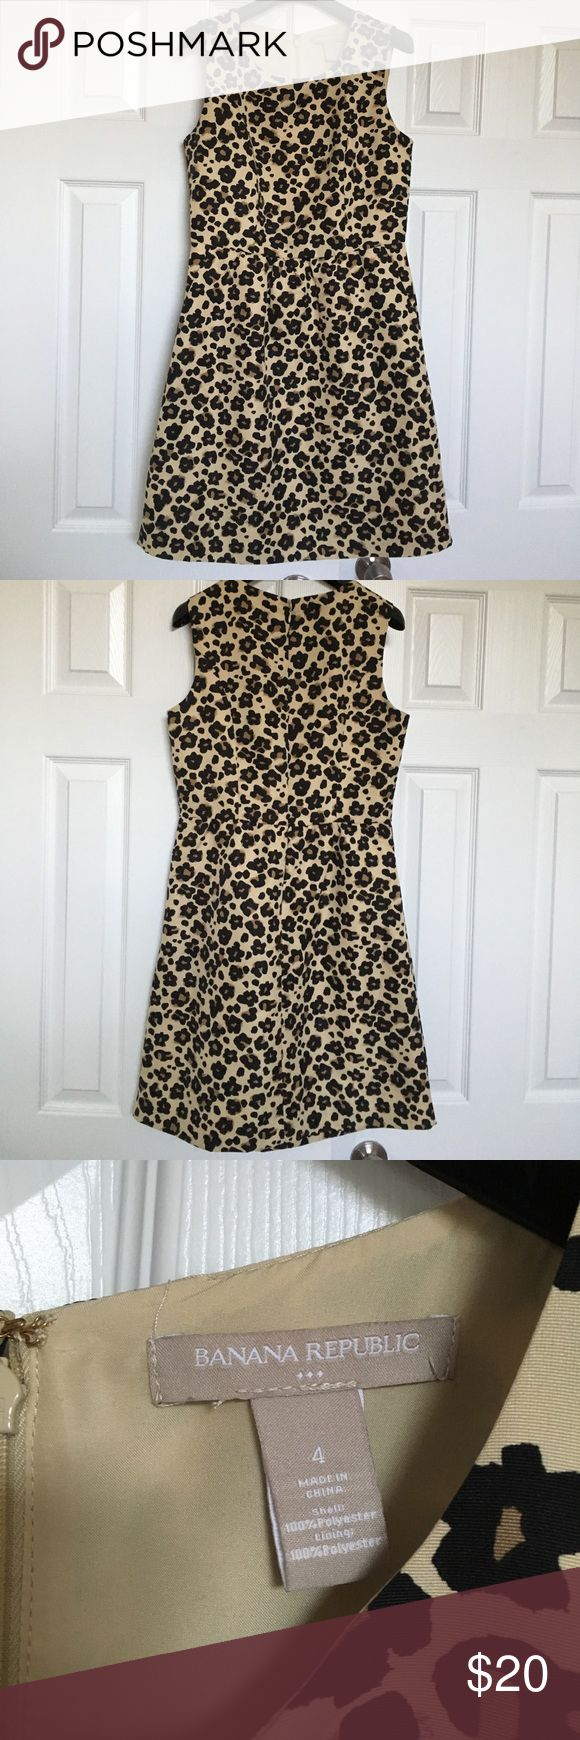 Banana Republic Sleeveless Cheetah Print Dress Banana Republic sleeveless cheetah print dress. Dress has pockets and shows no signs of wear. Cute by itself or with a collared shirt layered underneath. Banana Republic Dresses